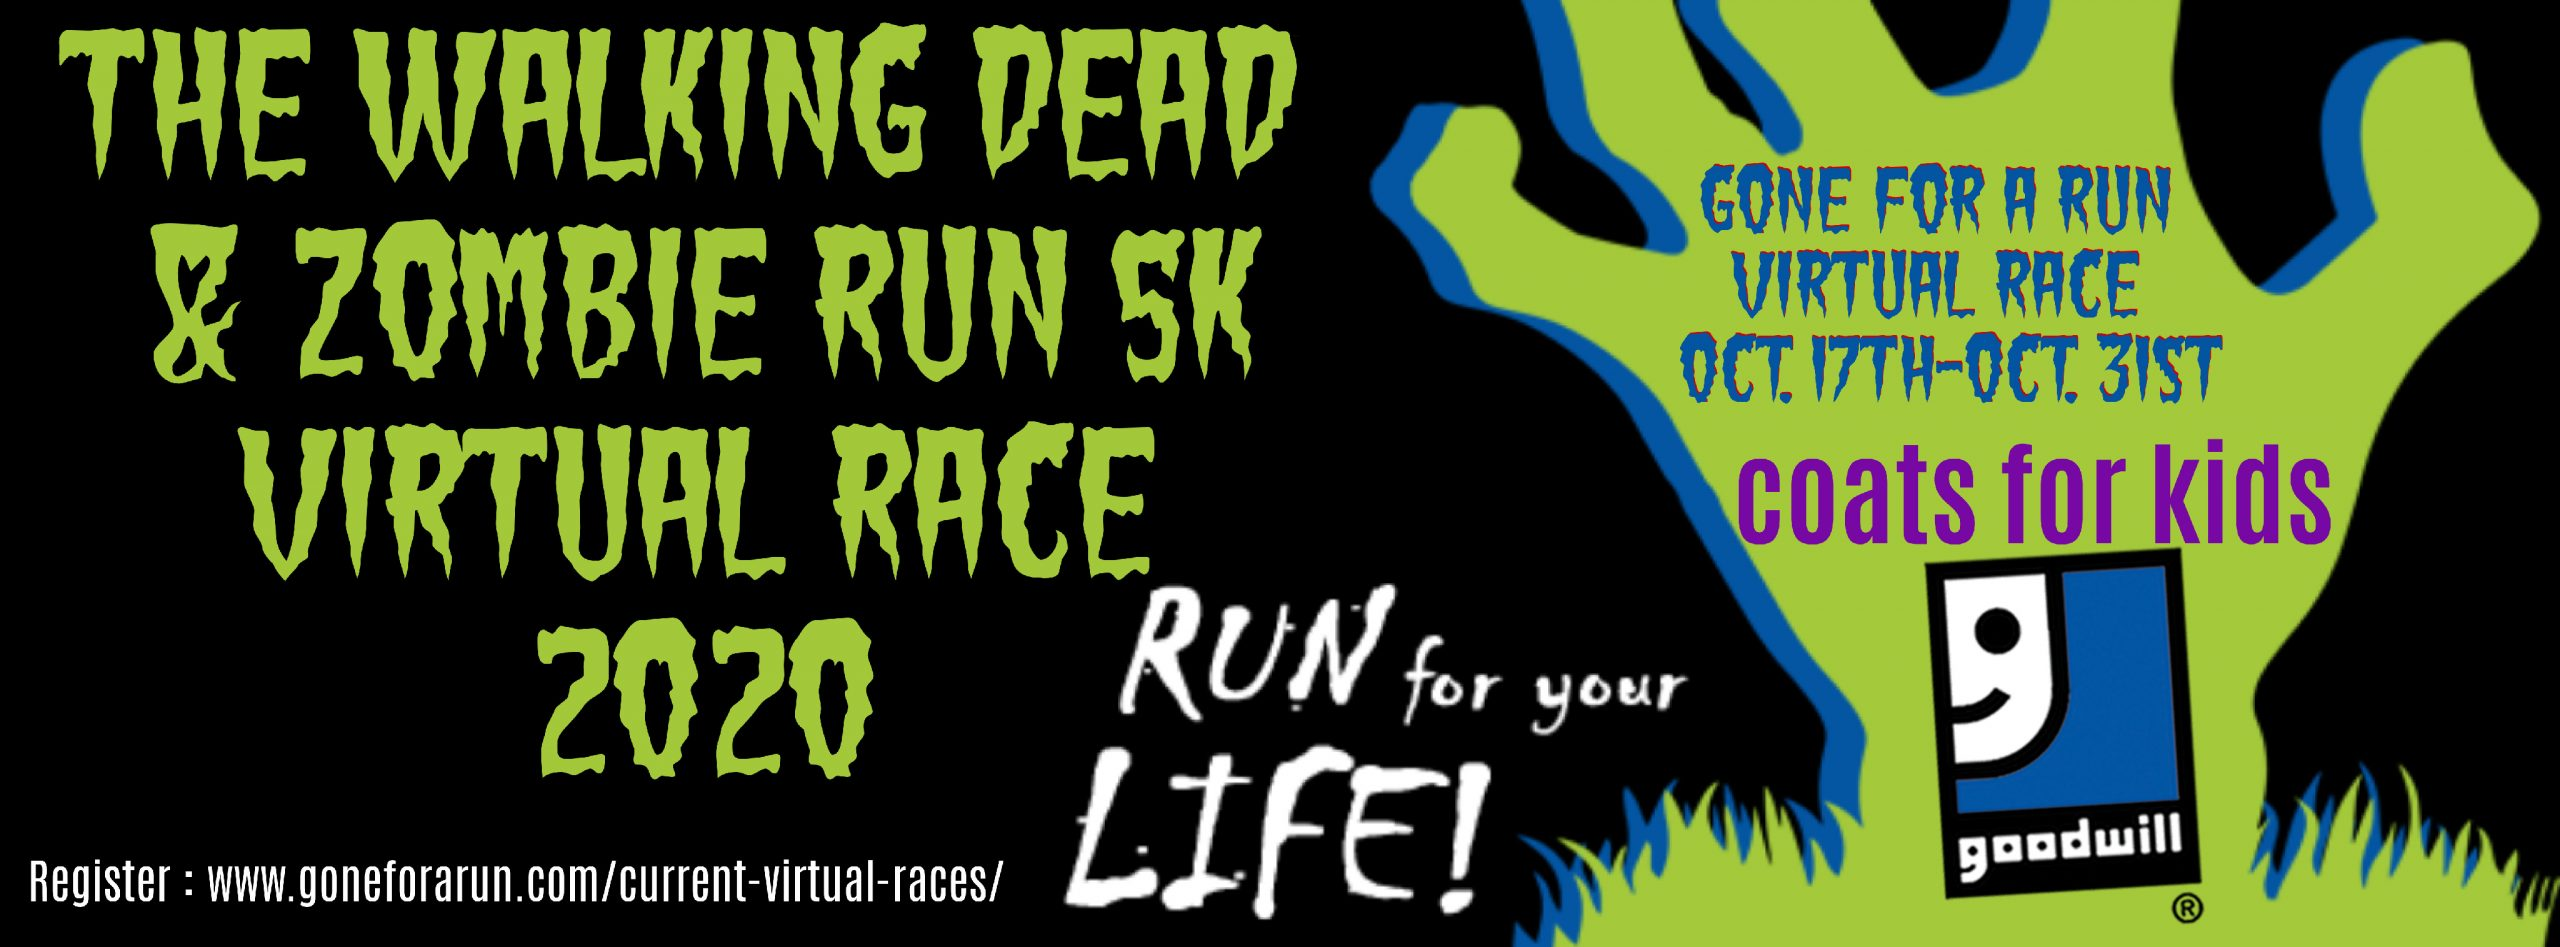 "Please join Goodwill Industries of KYOWVA Area, Inc. at our Virtual 6th Annual Walking Dead & Zombie Run 5K! This Virtual Race that will be taking place (via our host website, ""Gone For A Run"") on Saturday, October 17th – 31st, 2020. You can register here: https://www.goneforarun.com/virtual-race.../gwi-0001.html... Who says zombies are hostile to humanity? Run with us, 100% of the proceeds go toward Goodwill's Coats for Kids program which focuses on the basic-human necessity for clothing and winter-wear. With your participation, we will be able to purchase brand new coats, gloves, hats, and shoes for area youth in need. The course will be determined by each racer at their own pace – and can be completed at any location (indoors, outdoors, or even on your treadmill)! Set a personalized goal to complete the race distance while remaining socially distant! While virtual, the race will be as interactive as possible, with participants having access to an active leaderboard throughout the duration of the process. Racers will pay a $35 entry fee and will receive a downloadable bib via the virtual hosting site, and will be mailed a t-shirt and medal for participating. Should participants choose to walk or run at night, we encourage you to be both safe and spooky – dress in zombie apparel and glow-in-the-dark accessories. In any case, don't forget to show off your achievement by sharing your photos using #walkingdeadzombierun5k on social media! This unique race is sure to be the most thrilling 5K experience for all humans and zombies alike! It is a great way for the community to get to know Goodwill's mission, as well as learn more about our potential partners that make such events possible. We encourage you to walk, run or crawl your way to the finish line!"